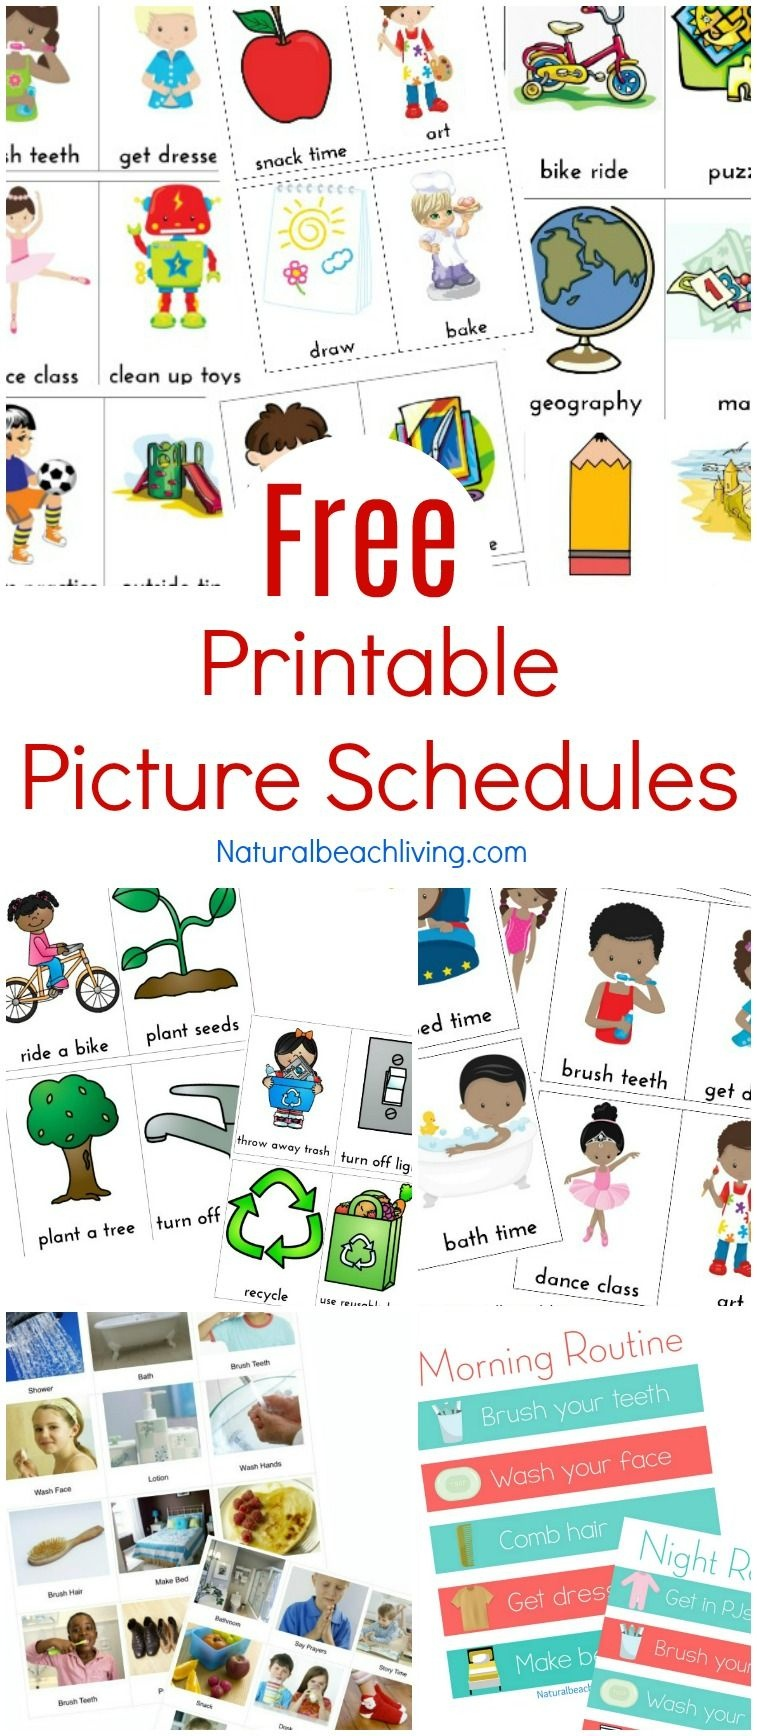 Free Printable Picture Schedule Cards - Visual Schedule Printables - Free Printable Visual Schedule For Classroom